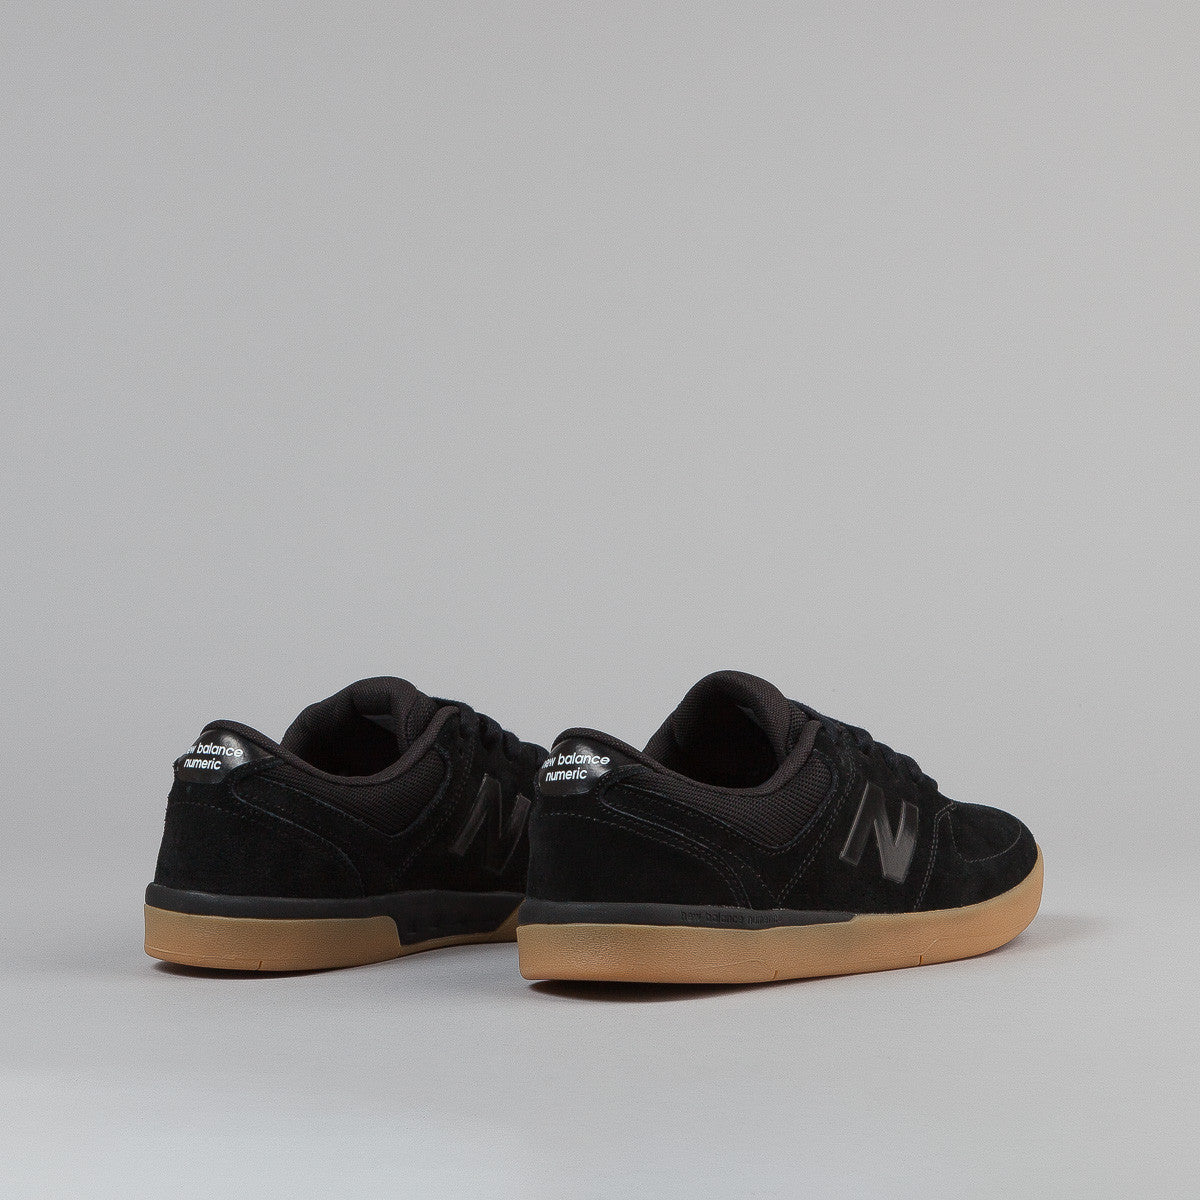 New Balance Numeric PJ Stratford 533 Shoes - Black / Gum